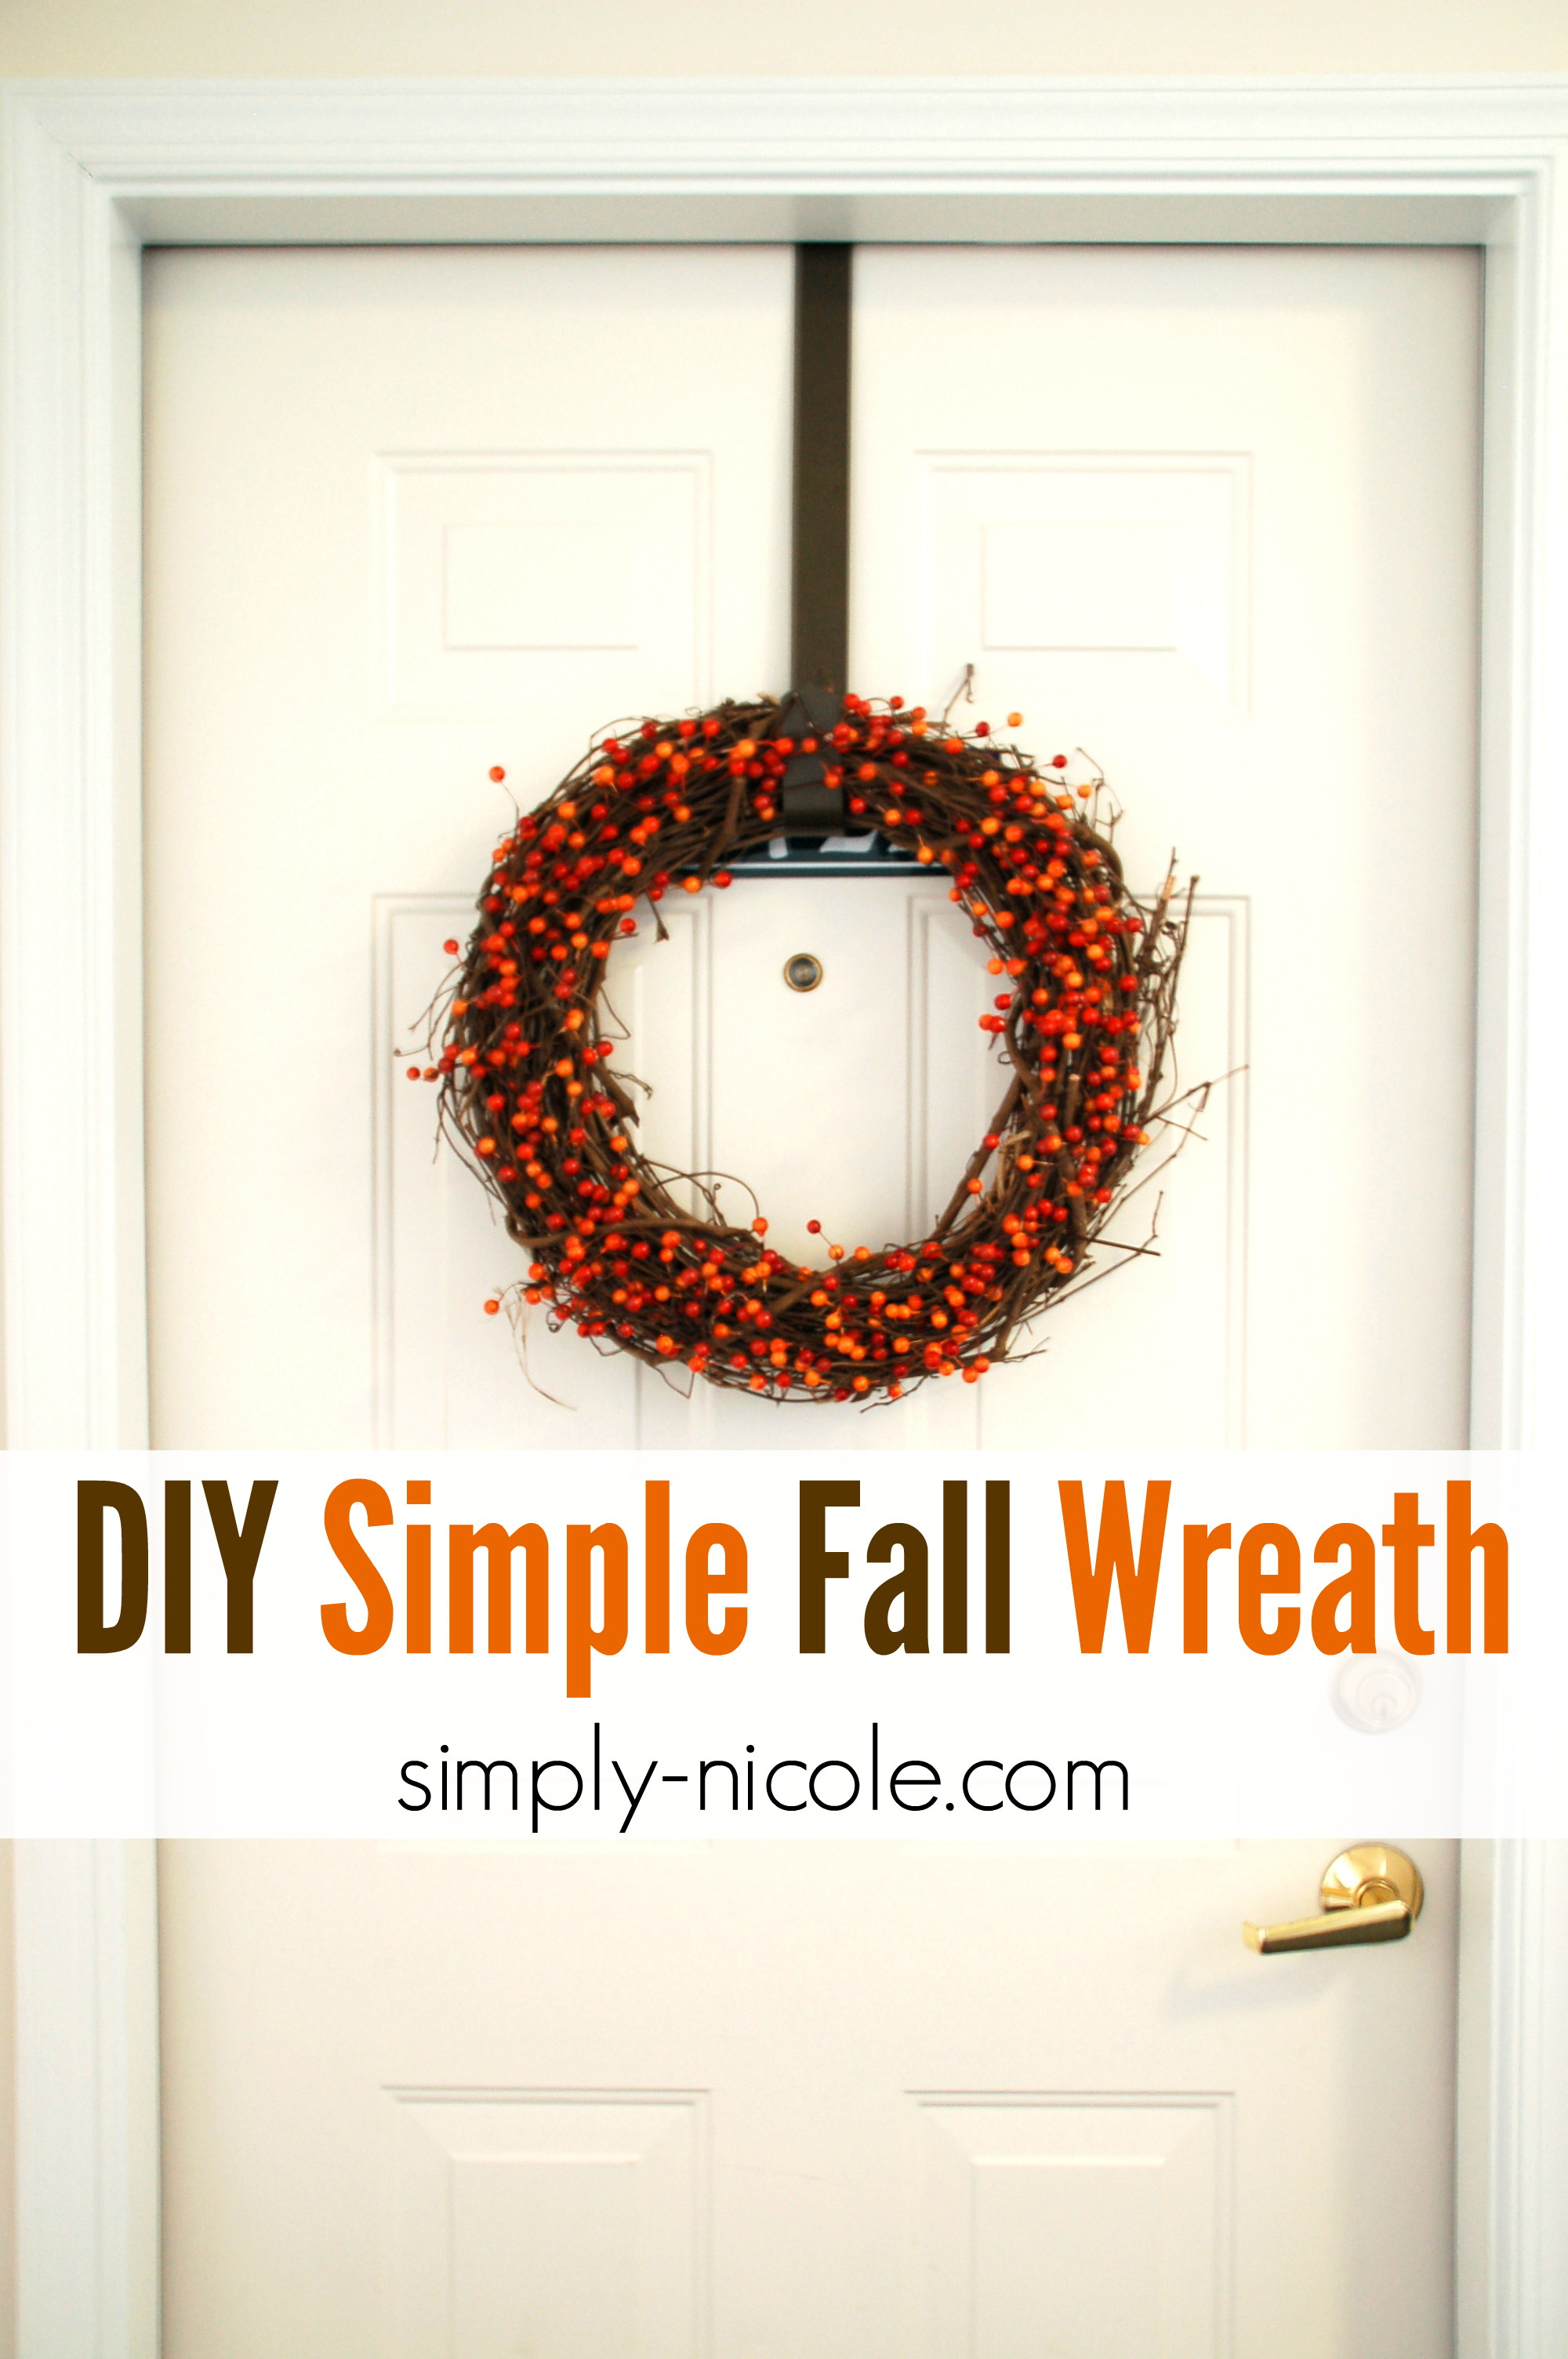 DIY Simple Fall Wreath at simply-nicole.com